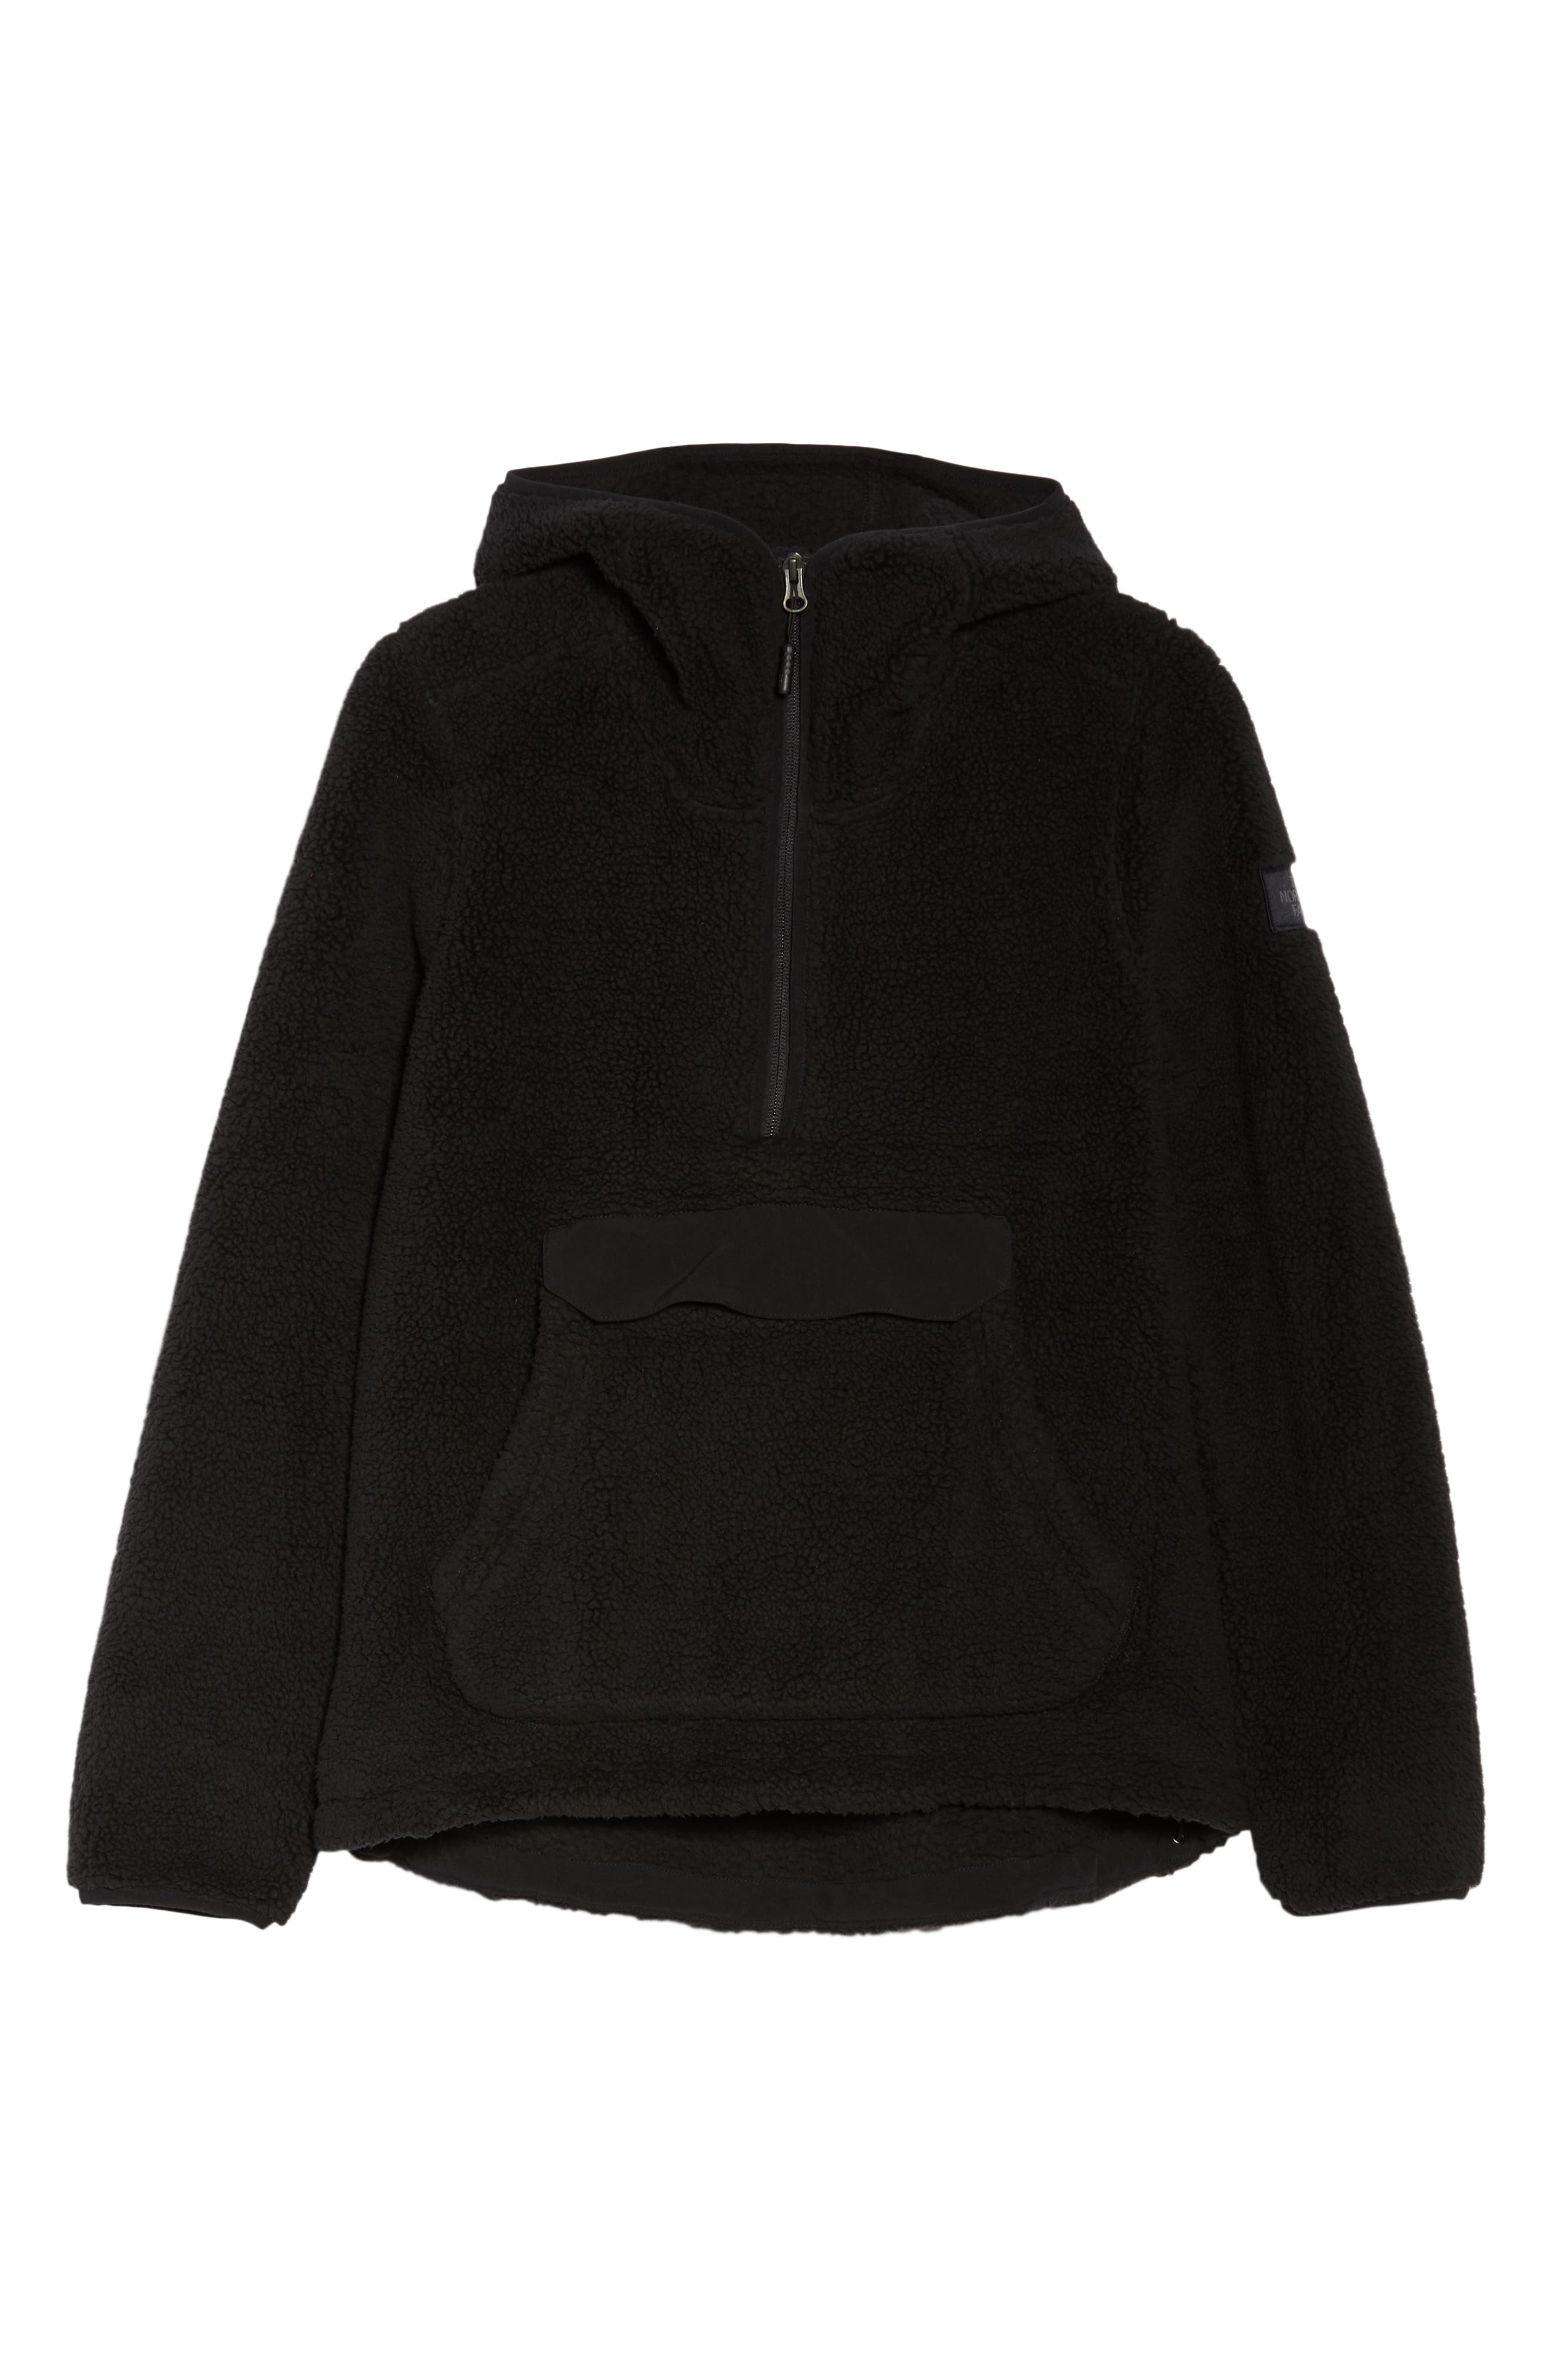 THE NORTH FACE, Campshire High Pile Fleece Pullover Hoodie, Alternate thumbnail 6, color, TNF BLACK